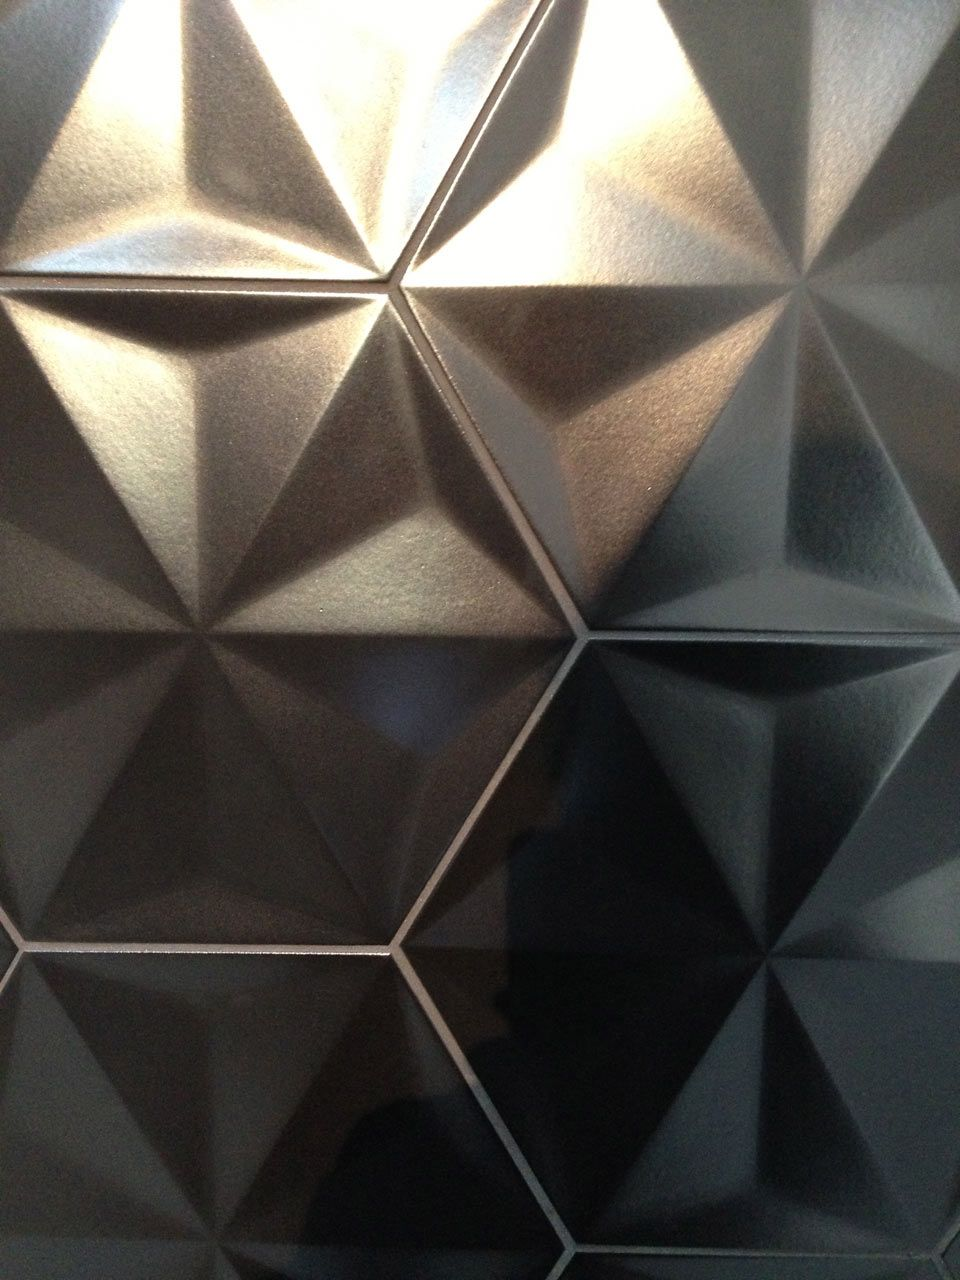 Cersaie-Fave-1-Bisazza-Hex-Marcel-Wanders | Marcel, 3d tiles and ...